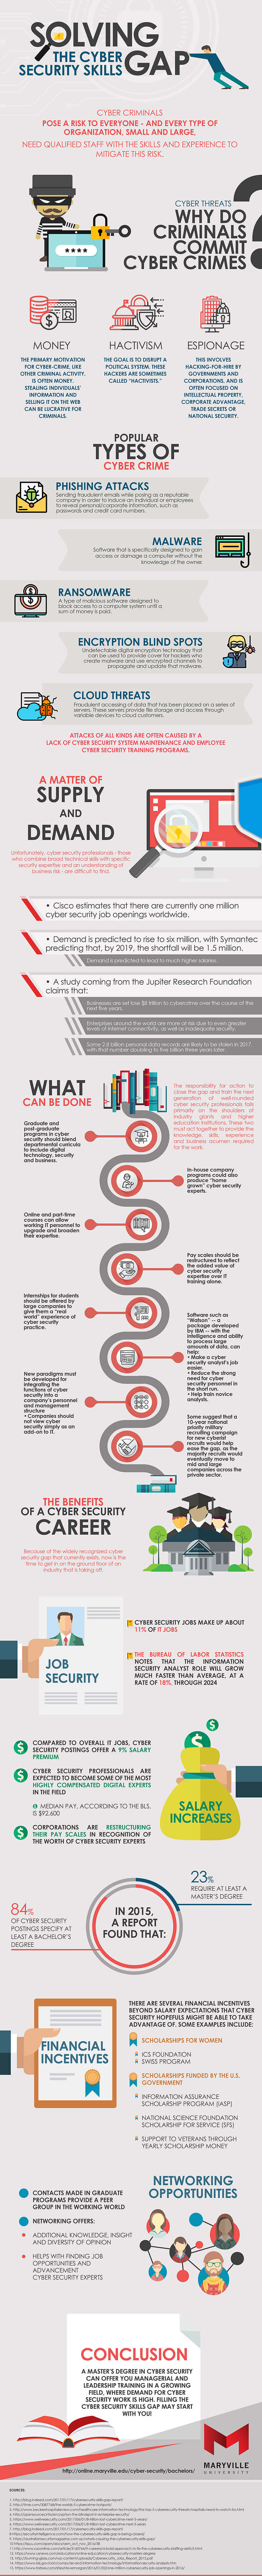 An infographic about the existing cyber security skills gap by Maryville University.